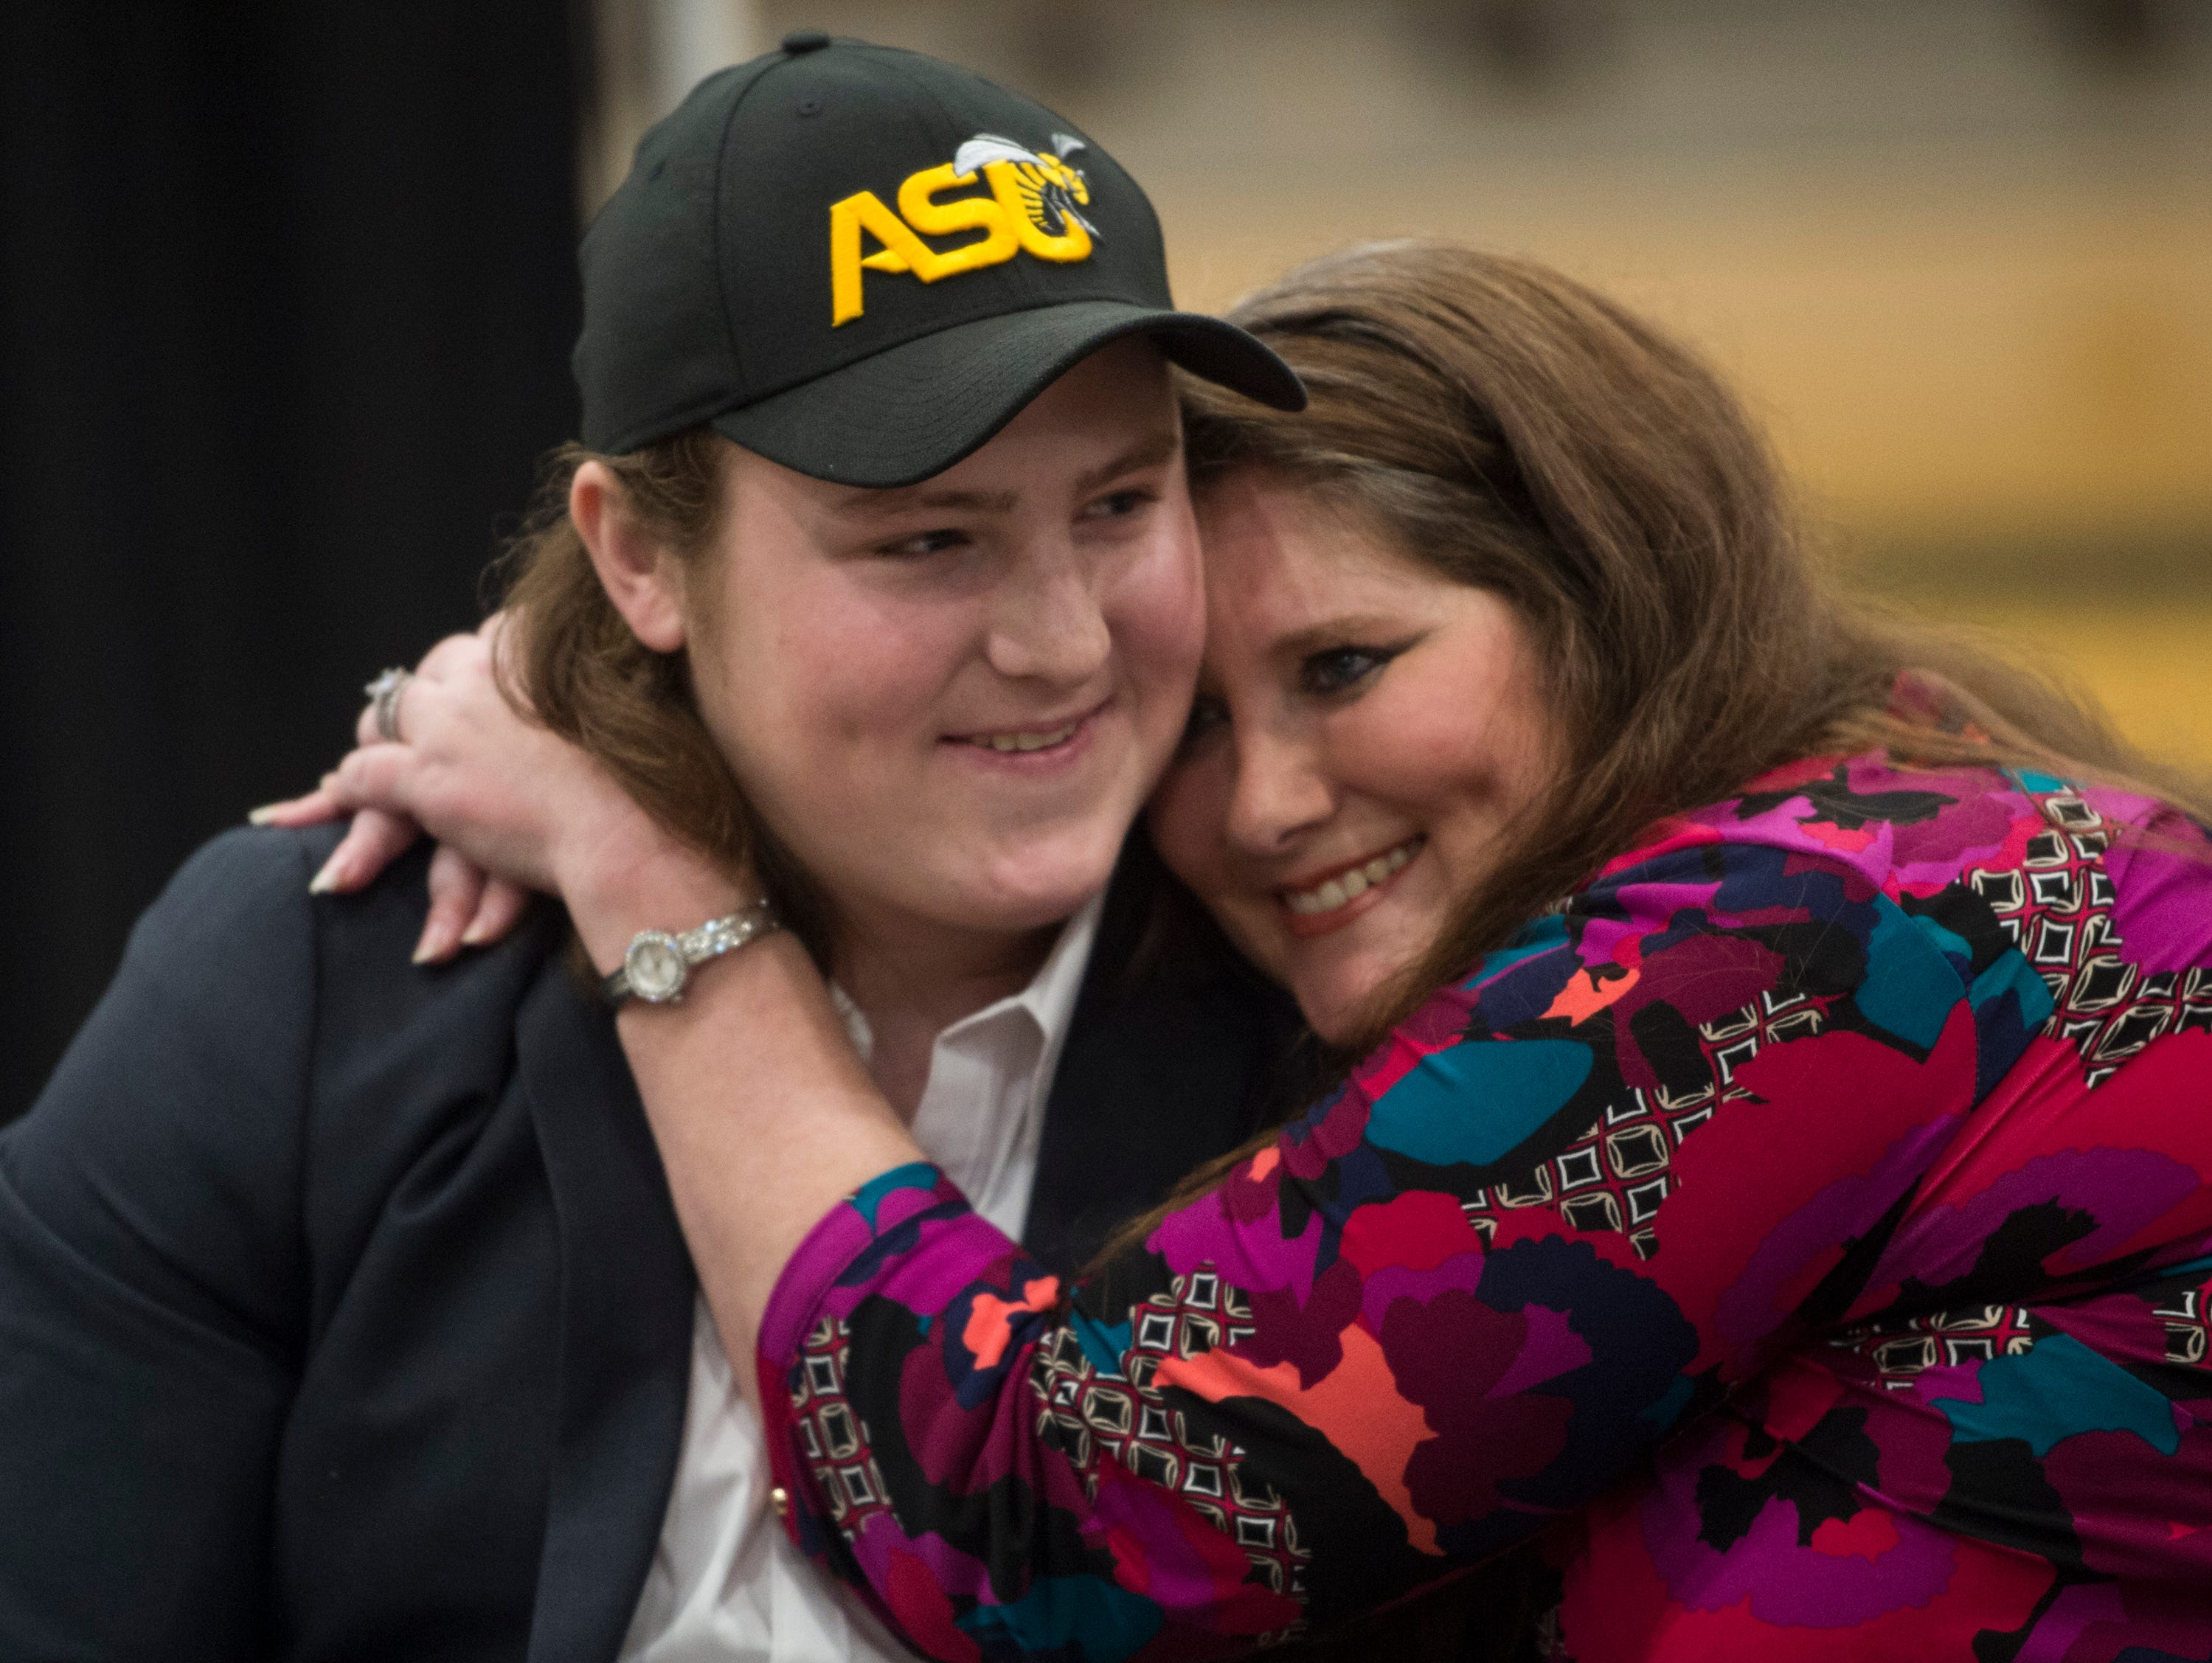 Colton Adams gets a hug from his mom after announcing his signing with Alabama State during signing day at Wetumpka High School in Wetumpka, Ala., on Wednesday, Feb. 6, 2019.